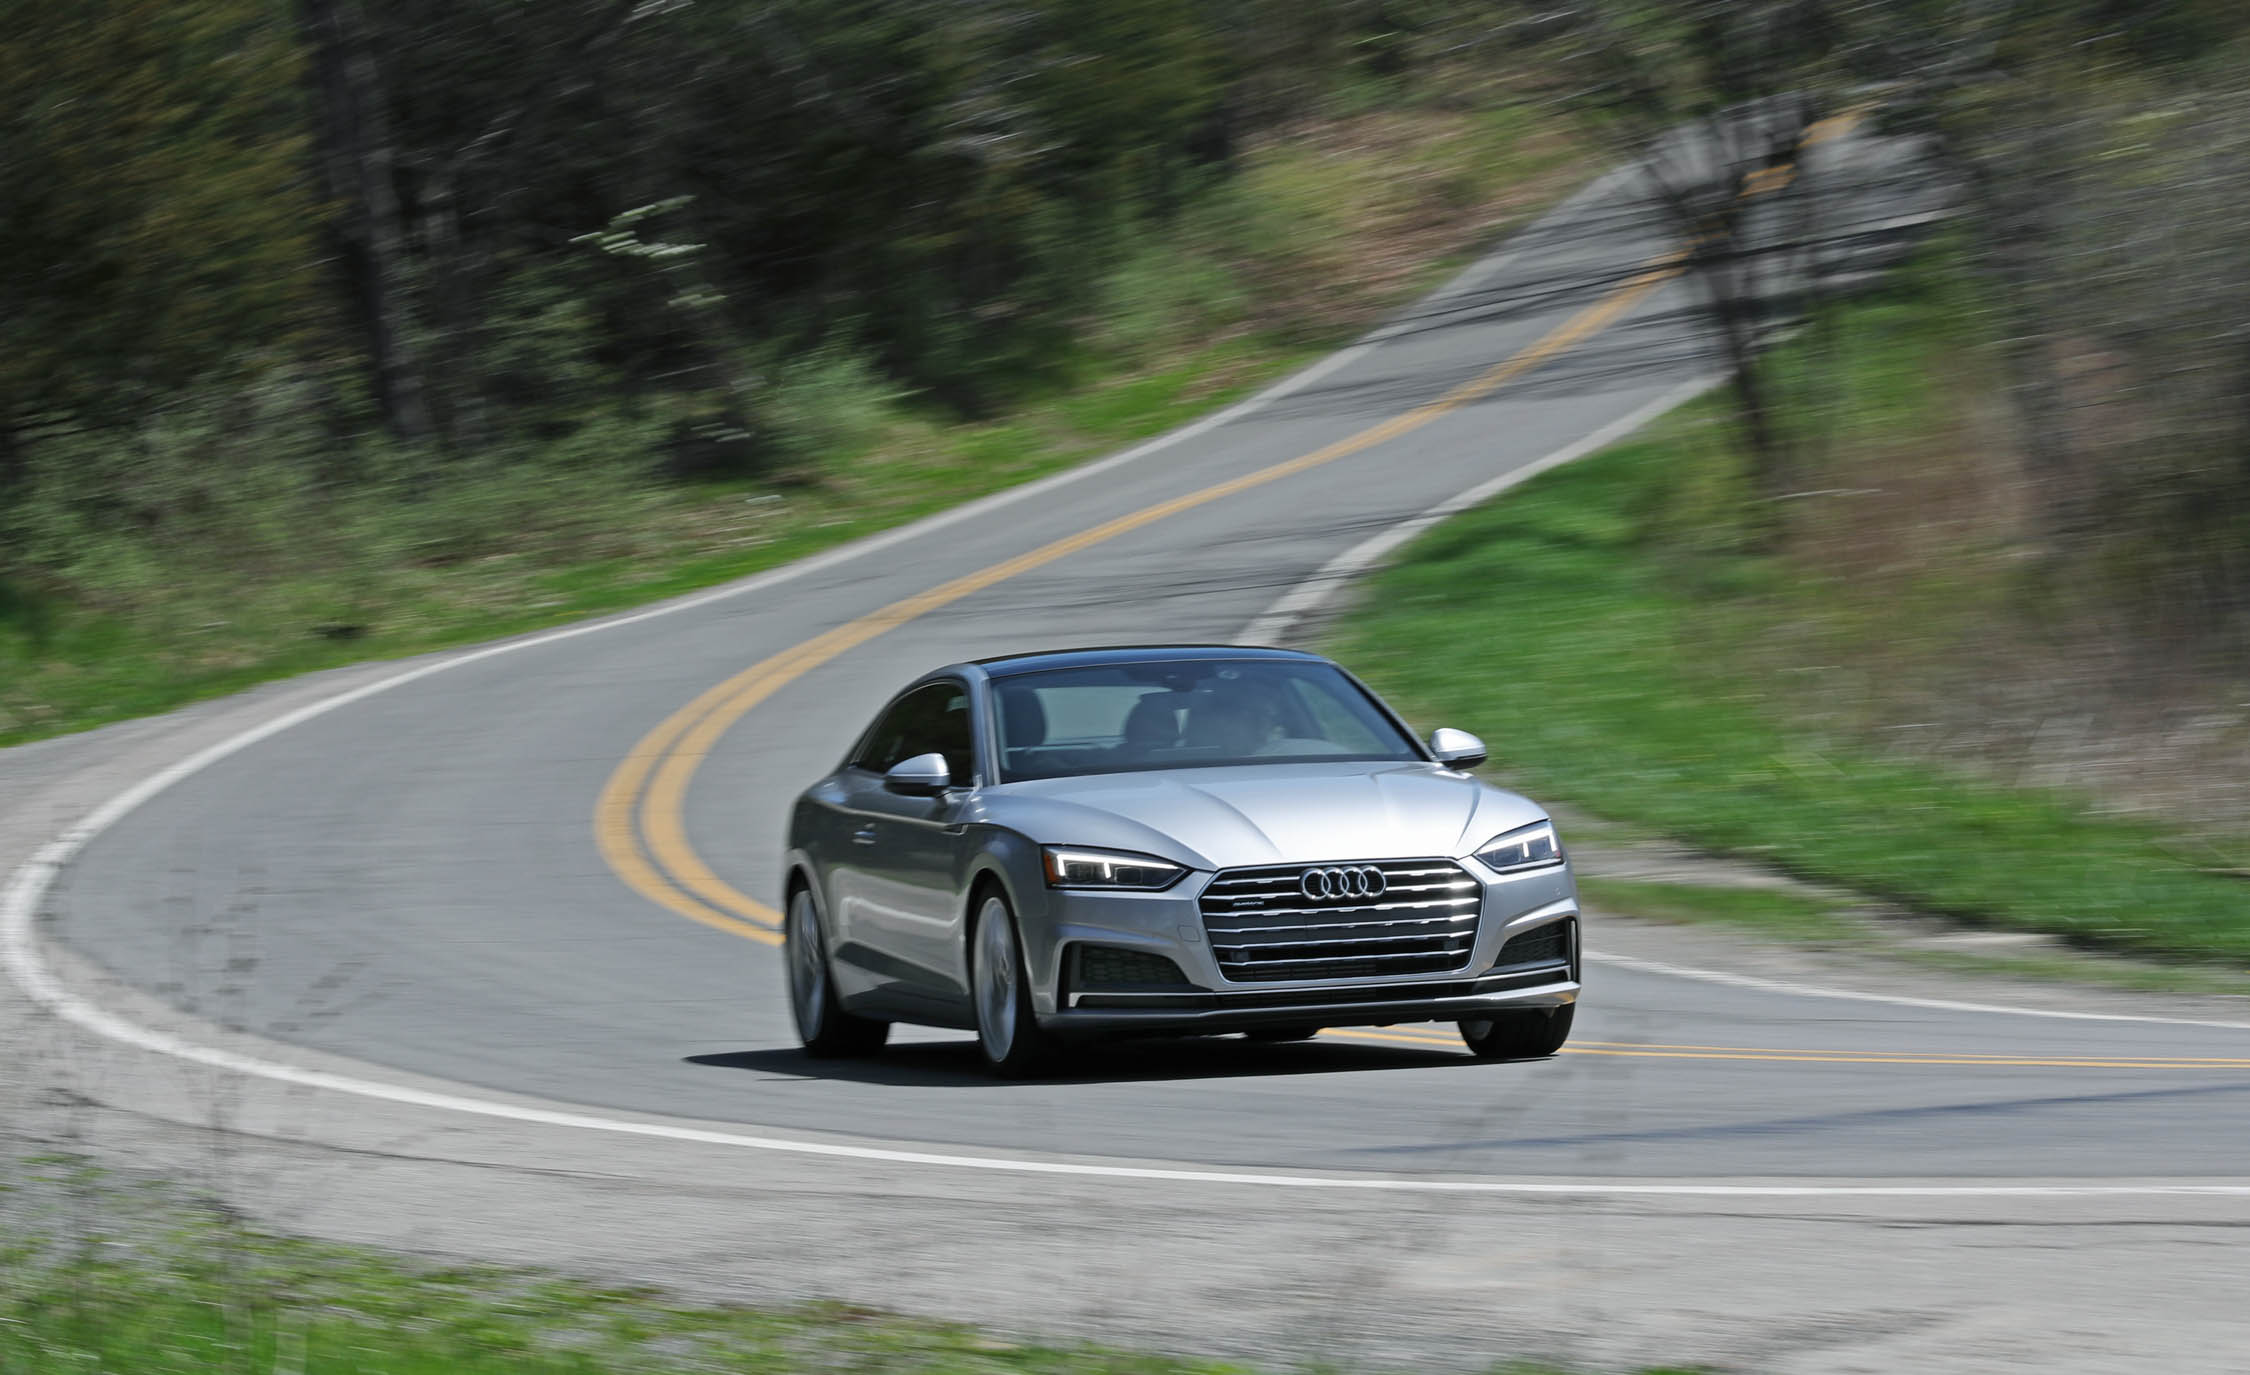 2018 Audi A5 Coupe Test Drive (Photo 4 of 50)